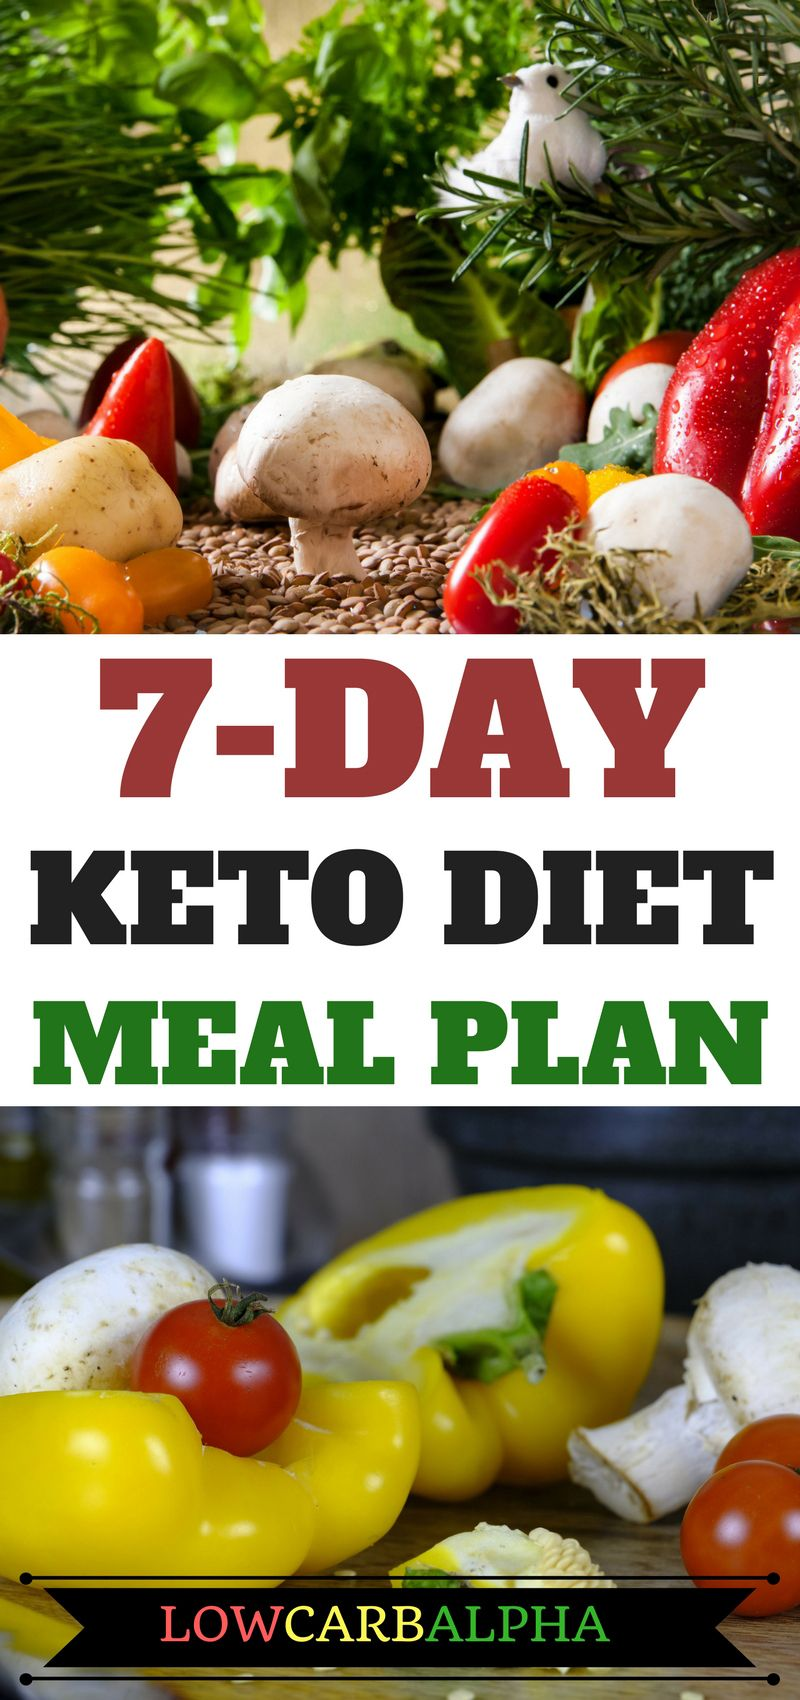 7 Day Ketogenic Diet Meal Plan And Benefits Of A Keto Diet